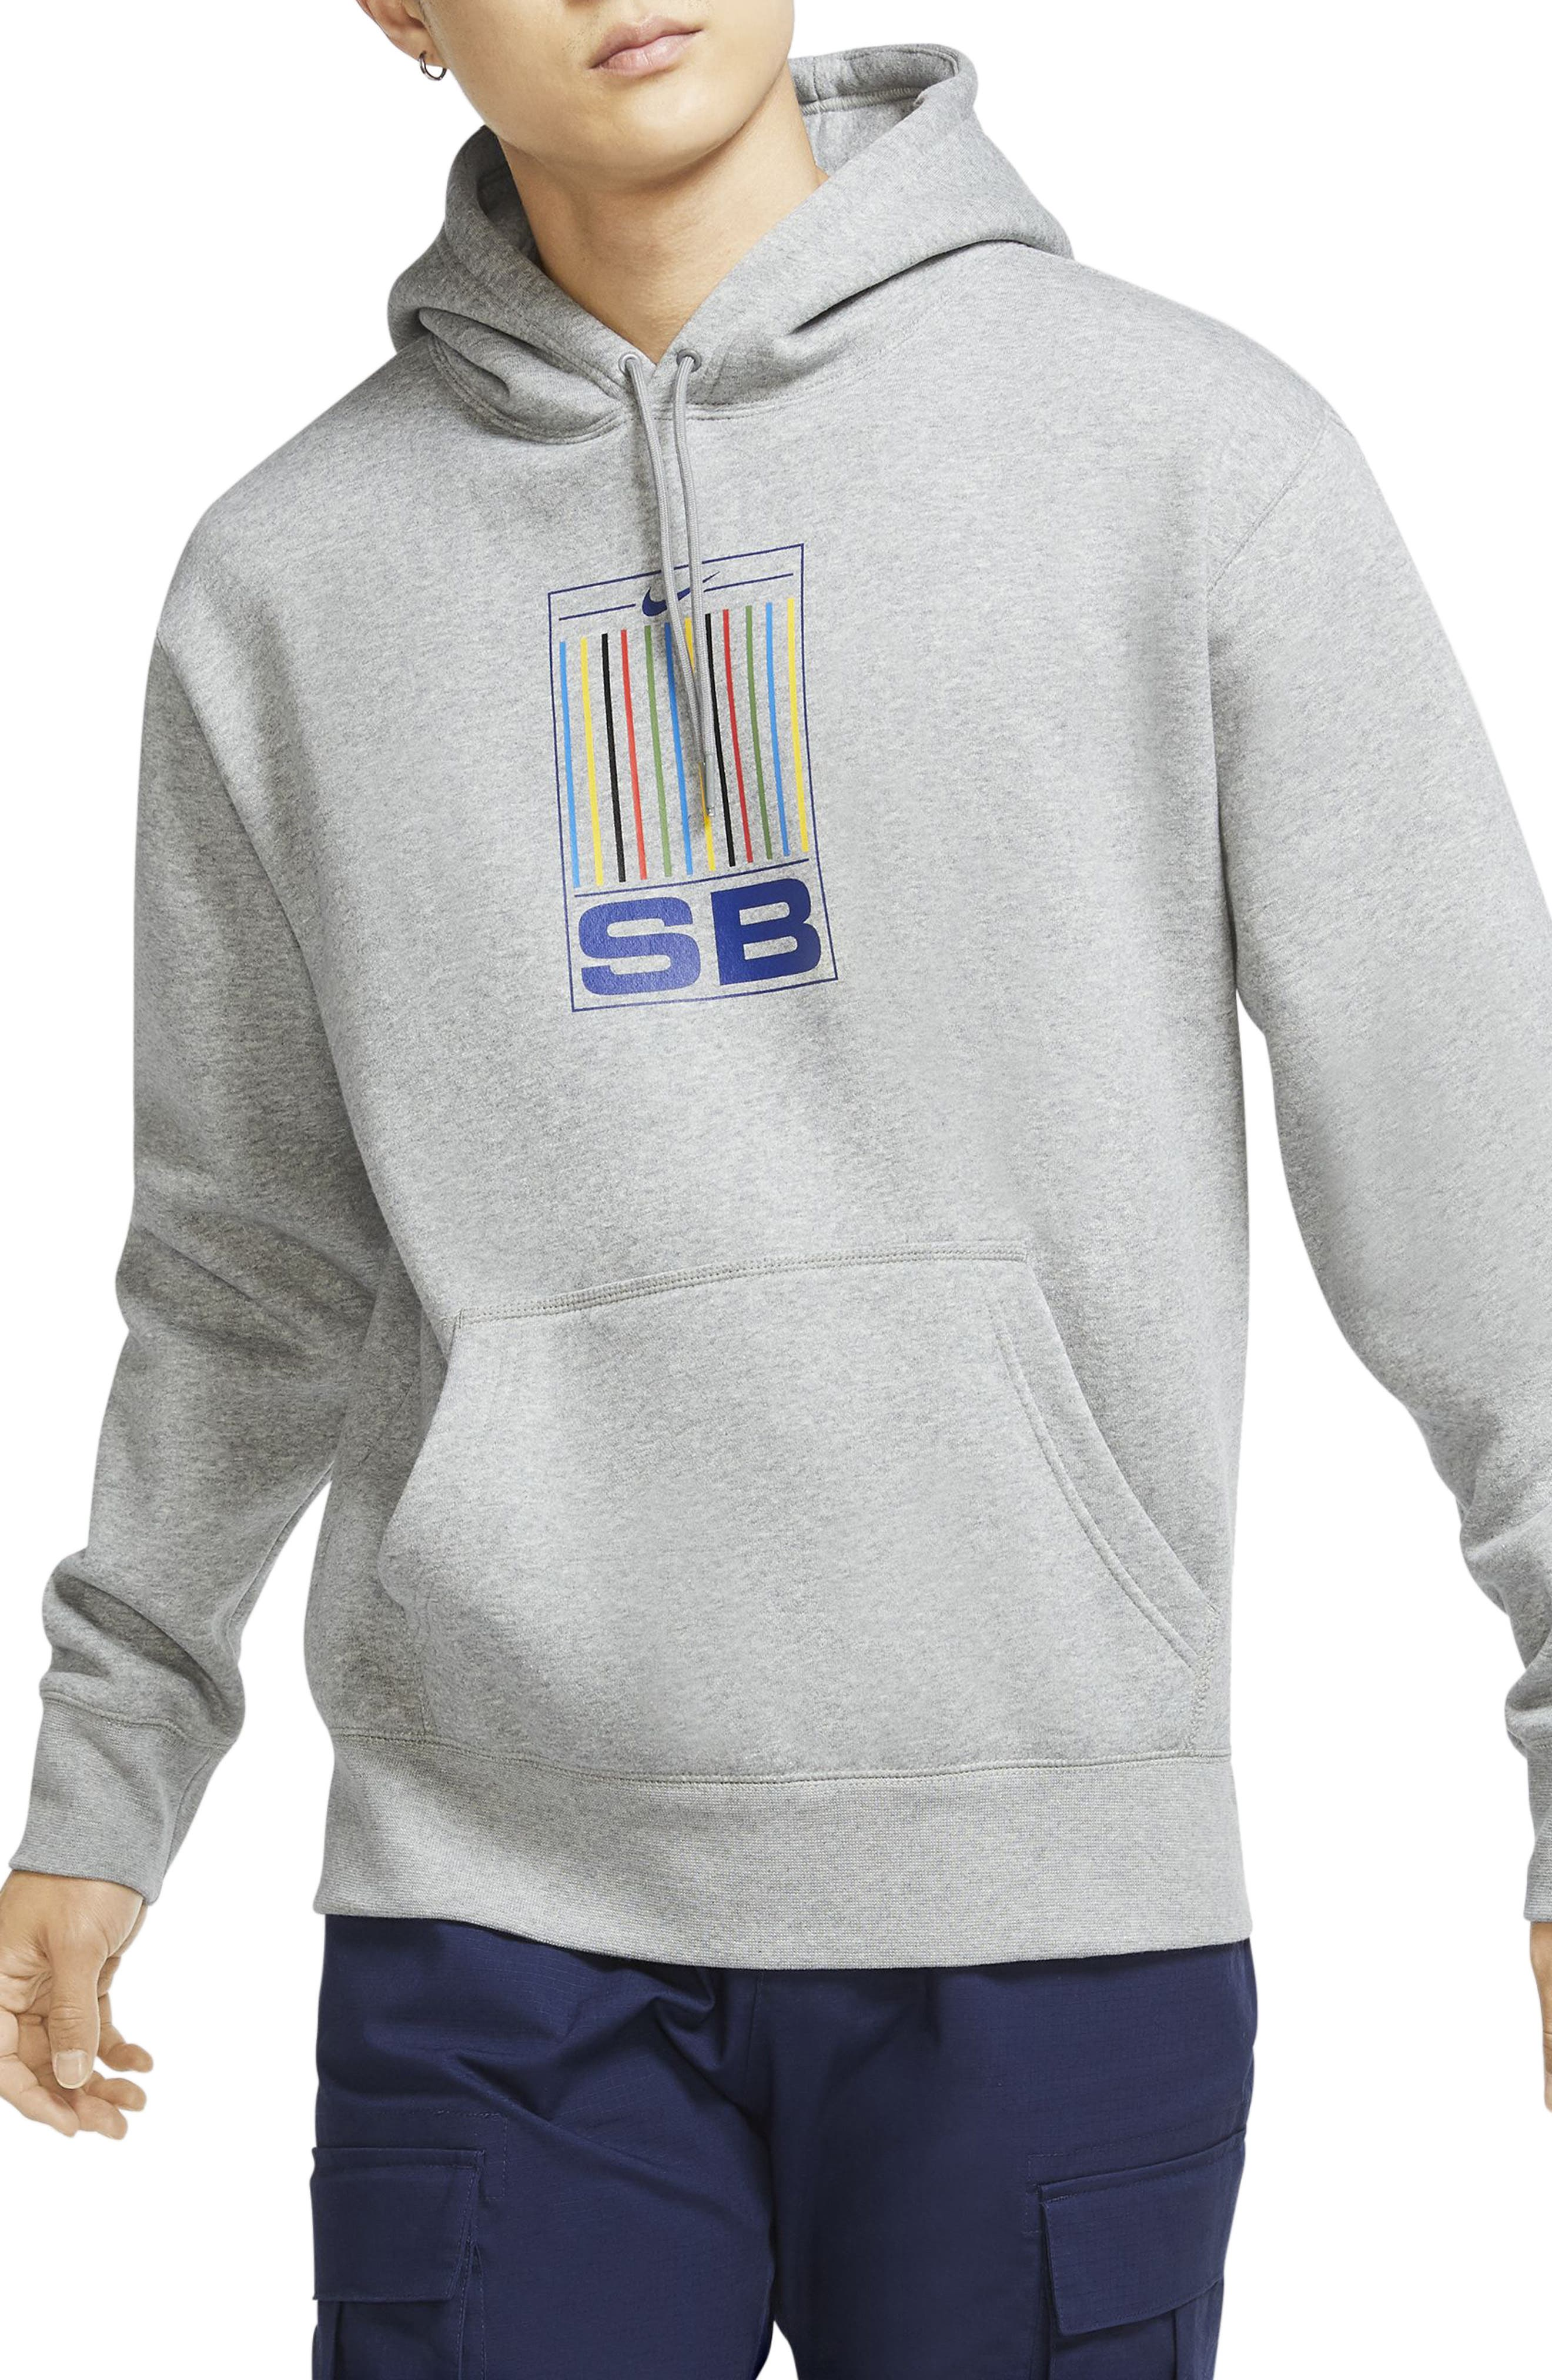 Colorful pinstripes wheel up the front of a hoodie designed to meet the demands of skateboarding, with breathable cotton and a fit that doesn\\\'t hold you back. A hidden front pocket gives you a secure place to stow keys and other small essentials as you roll. Style Name: Nike Sb Skate Hoodie. Style Number: 6010376. Available in stores.